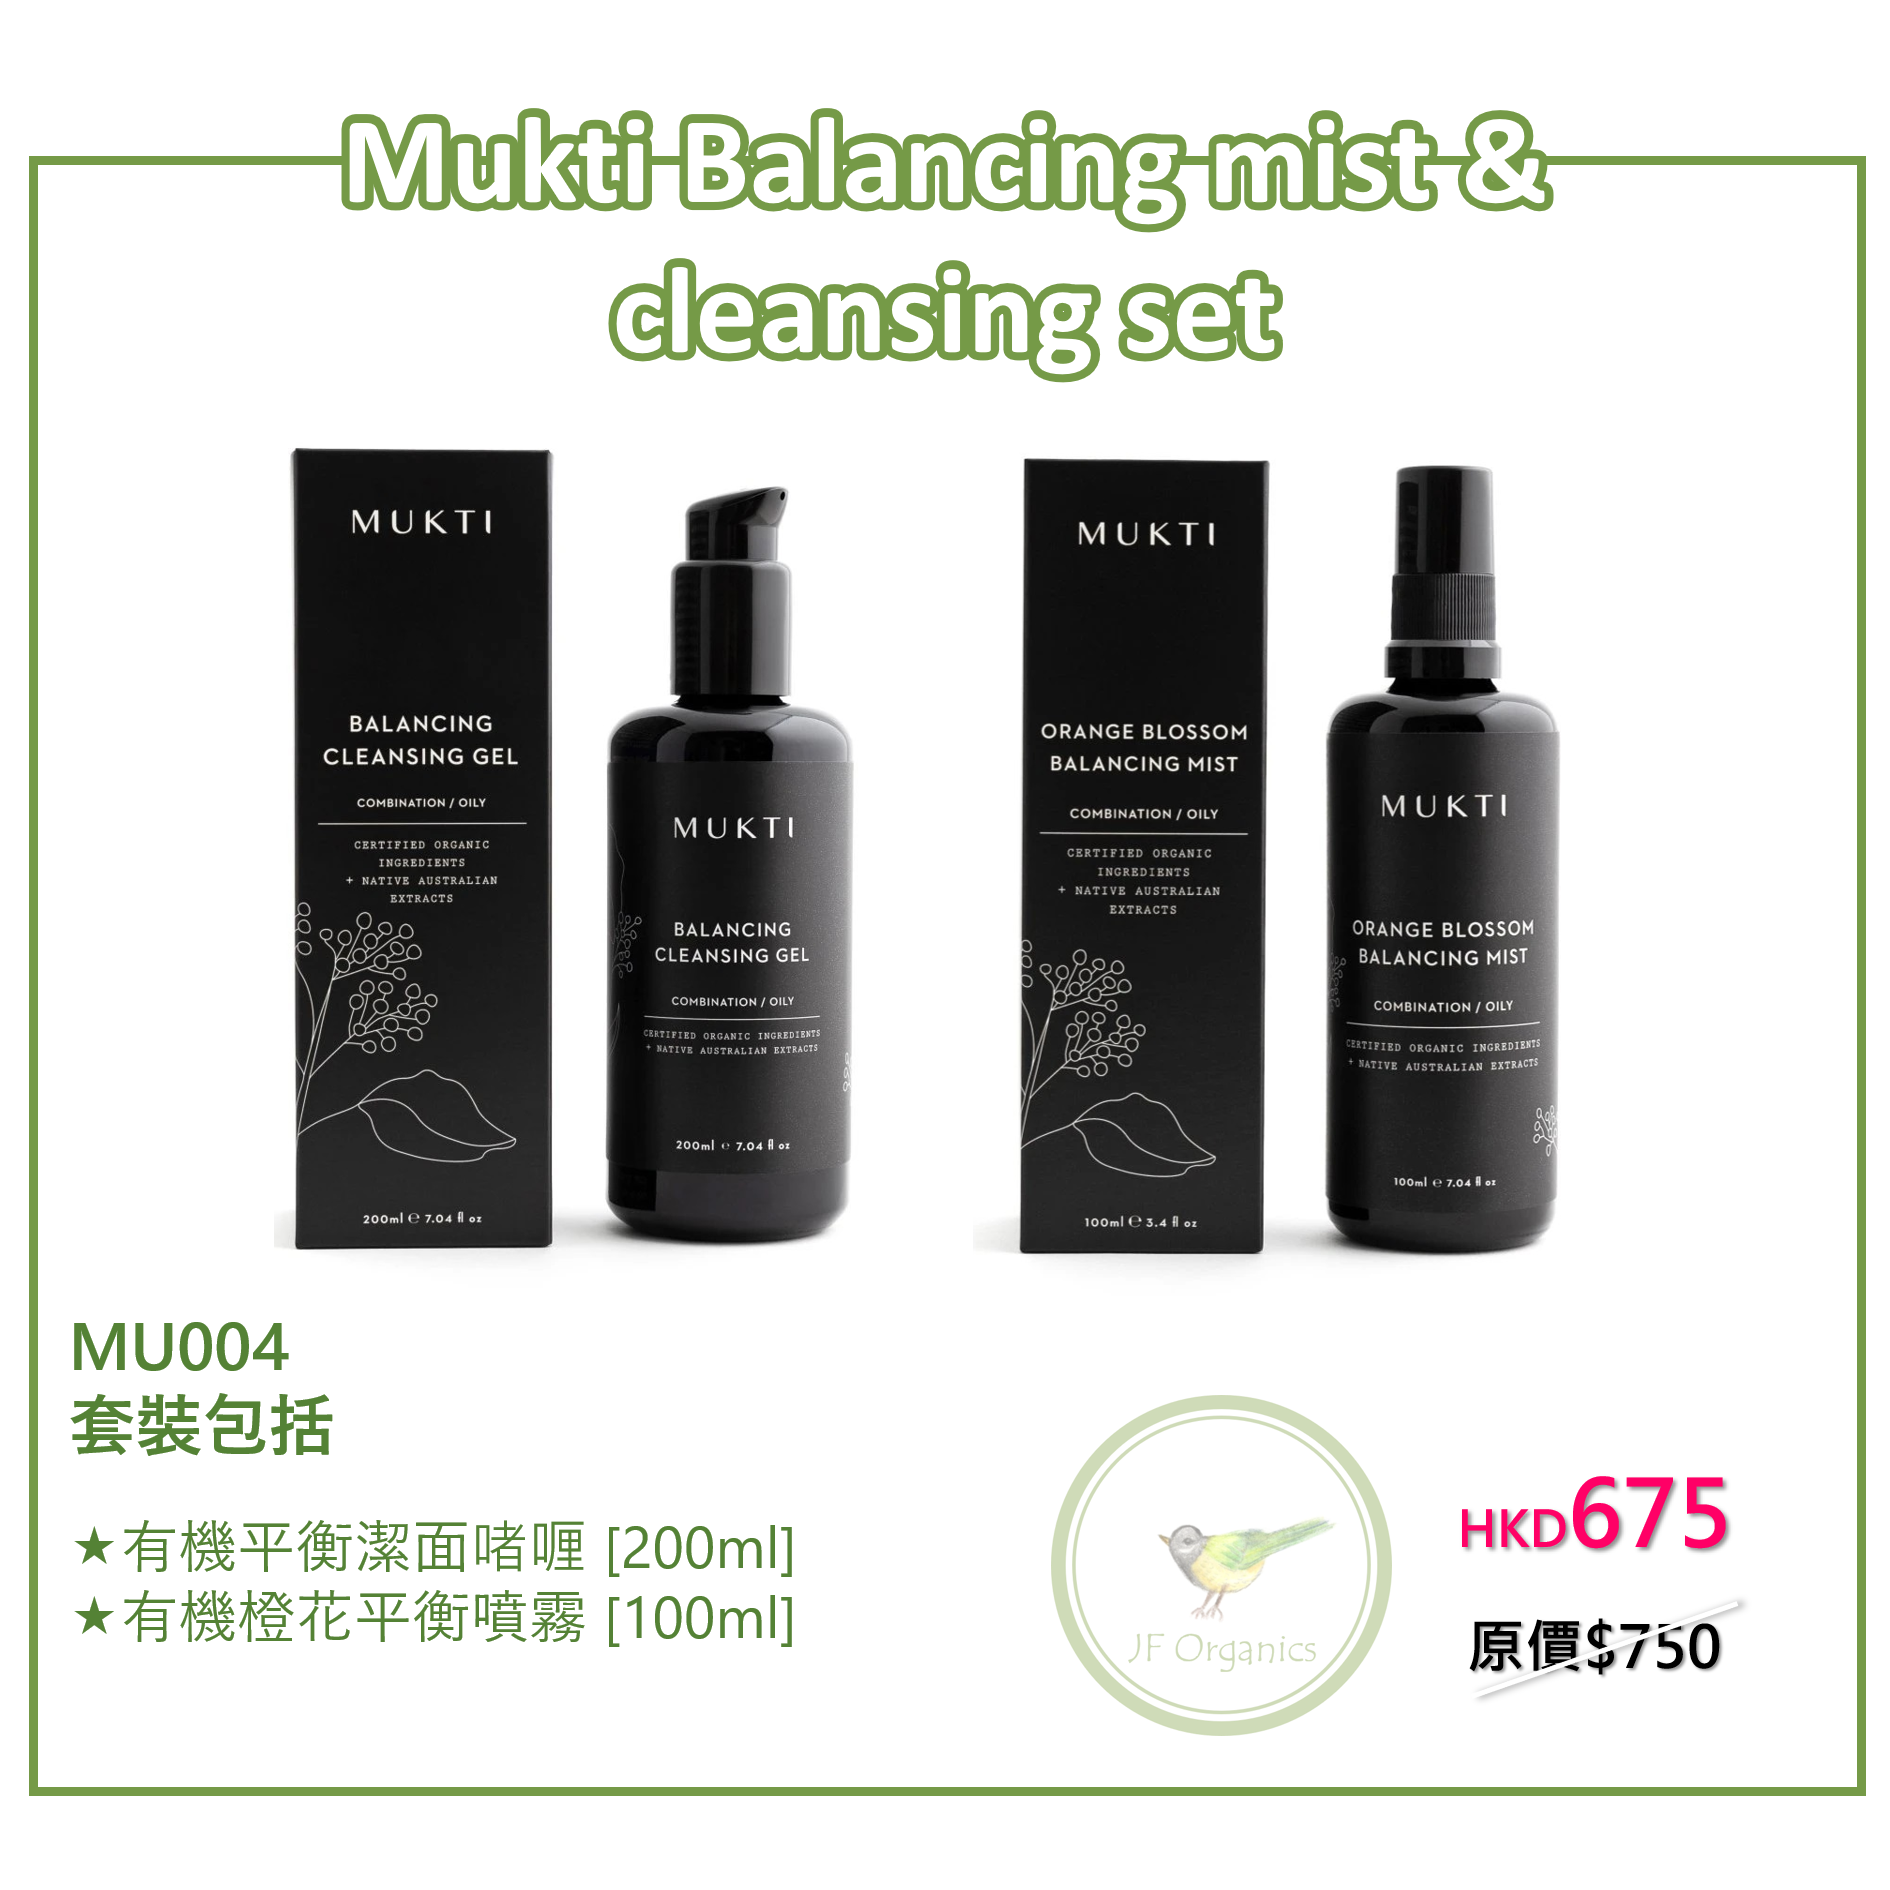 MUS004 MUKTI Balancing mist & cleansing gel (1113) set